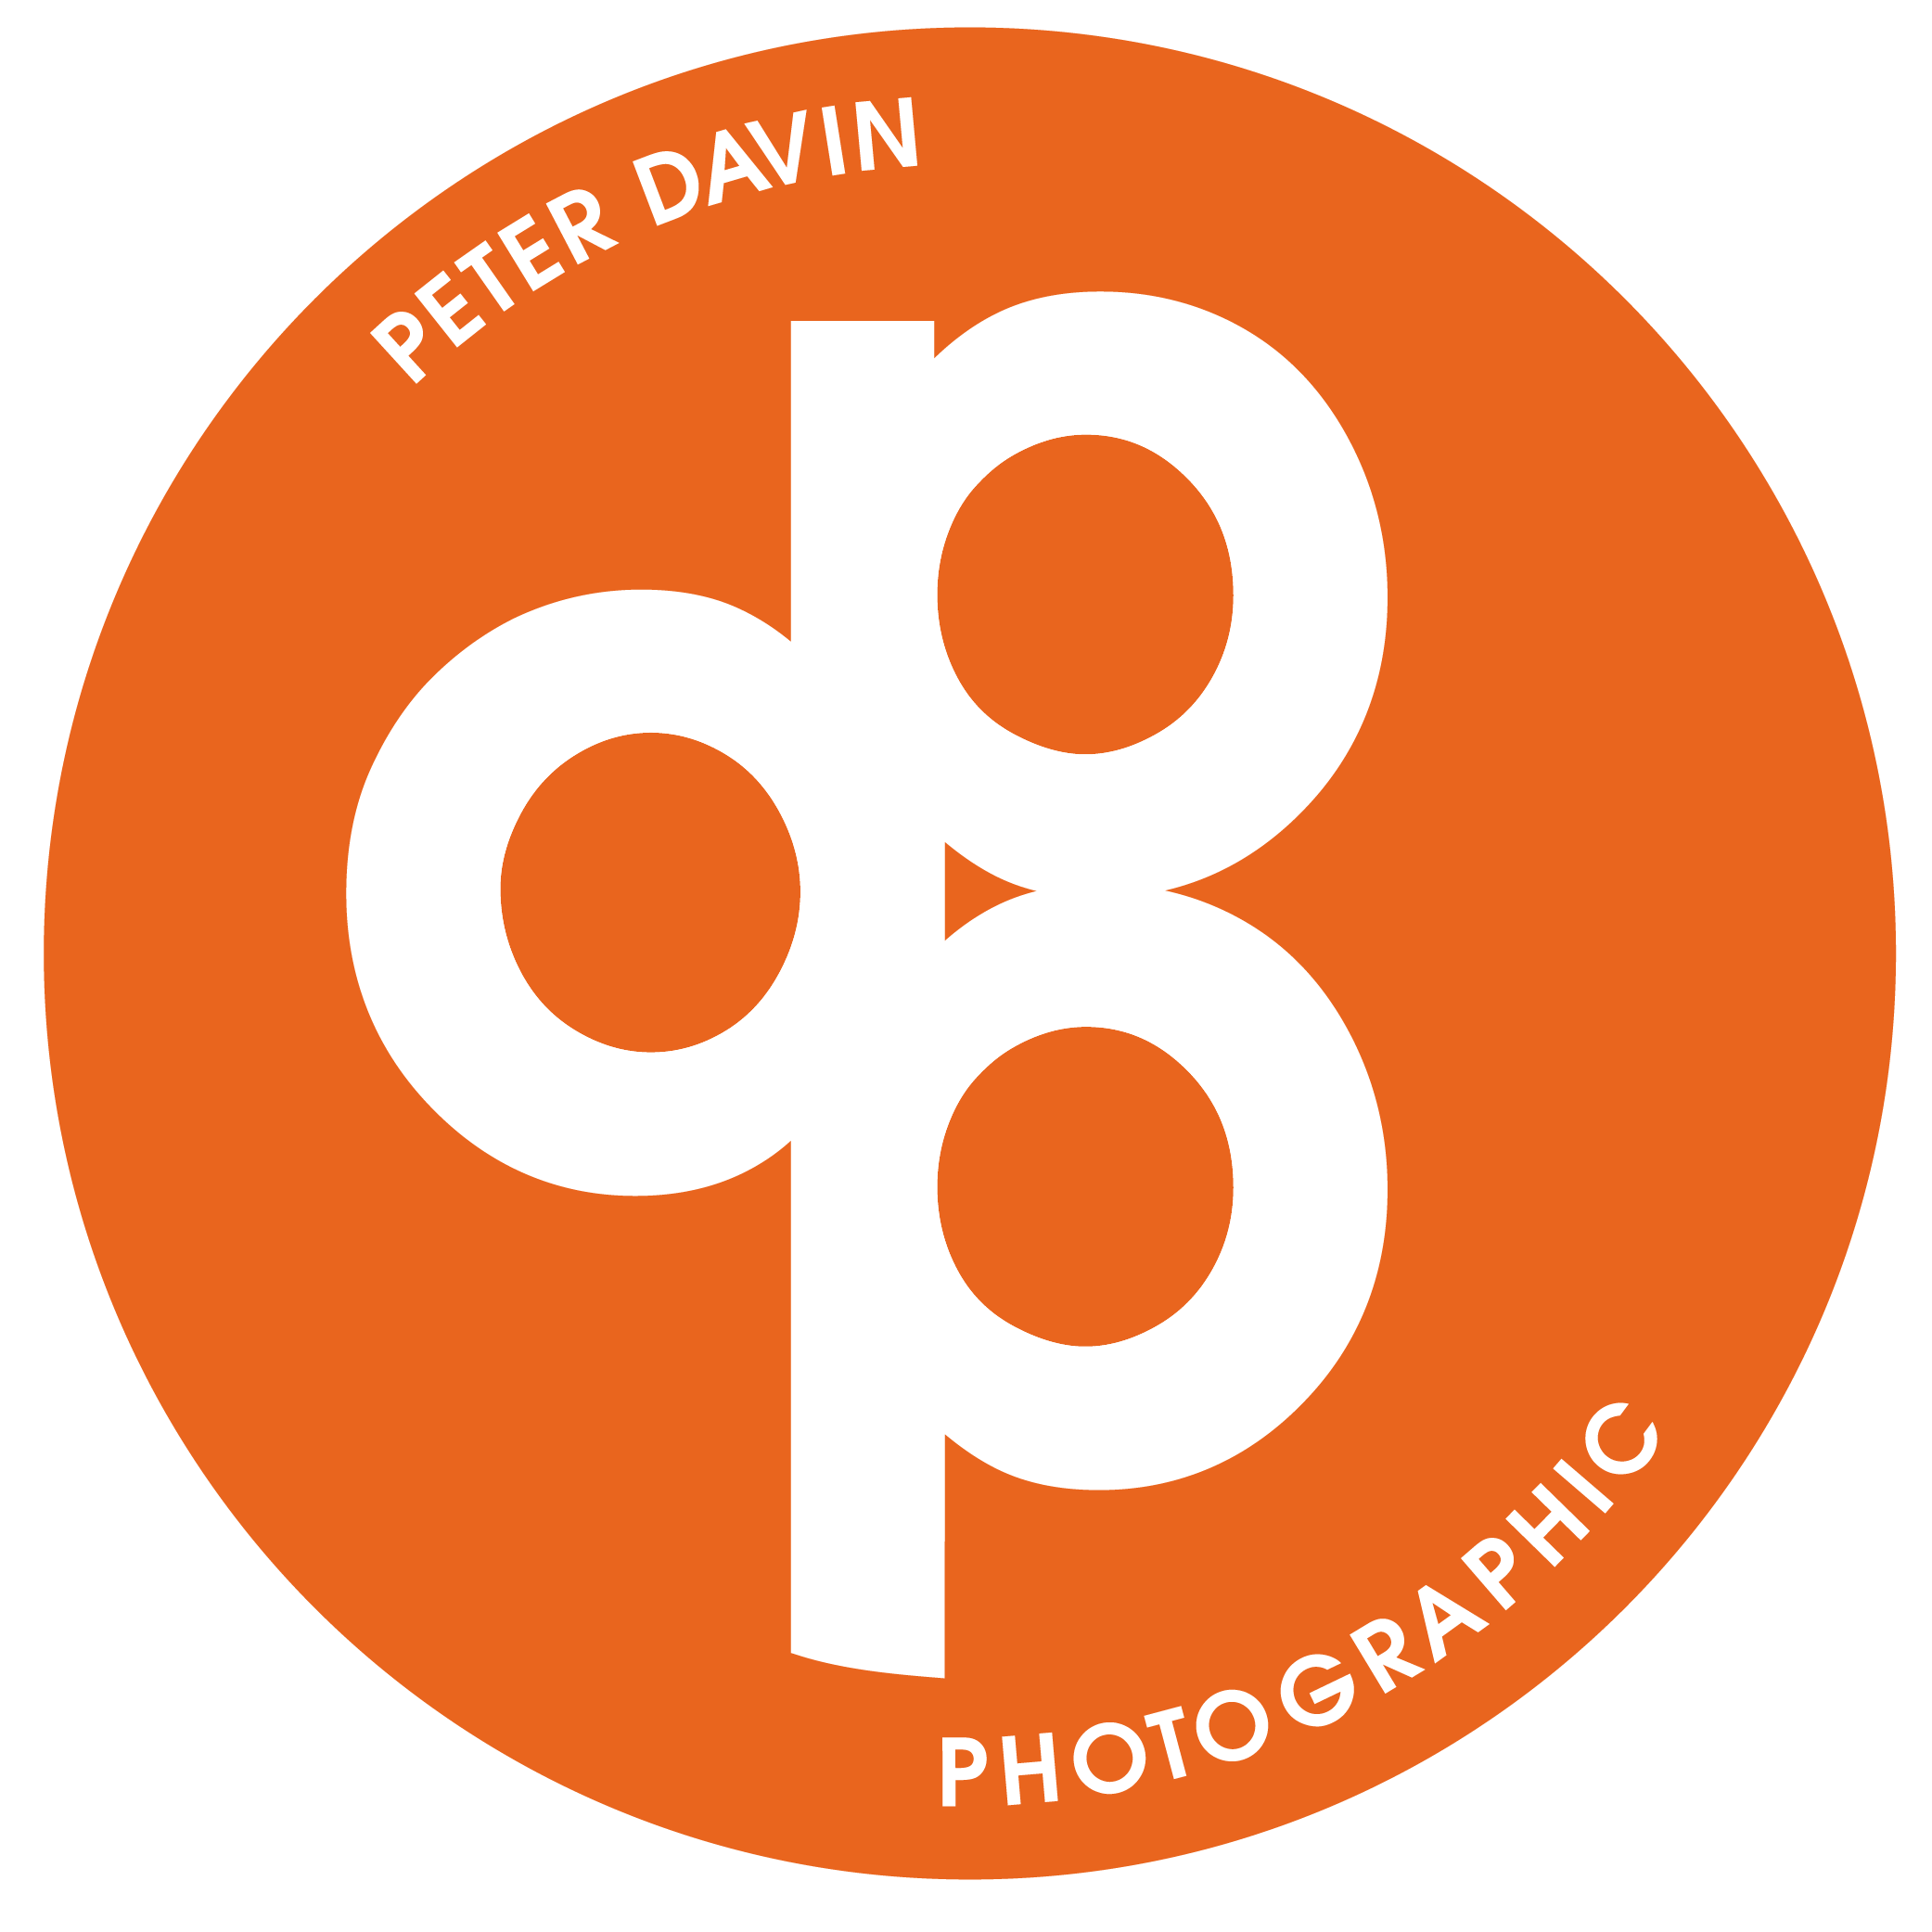 Peter Davin Photography